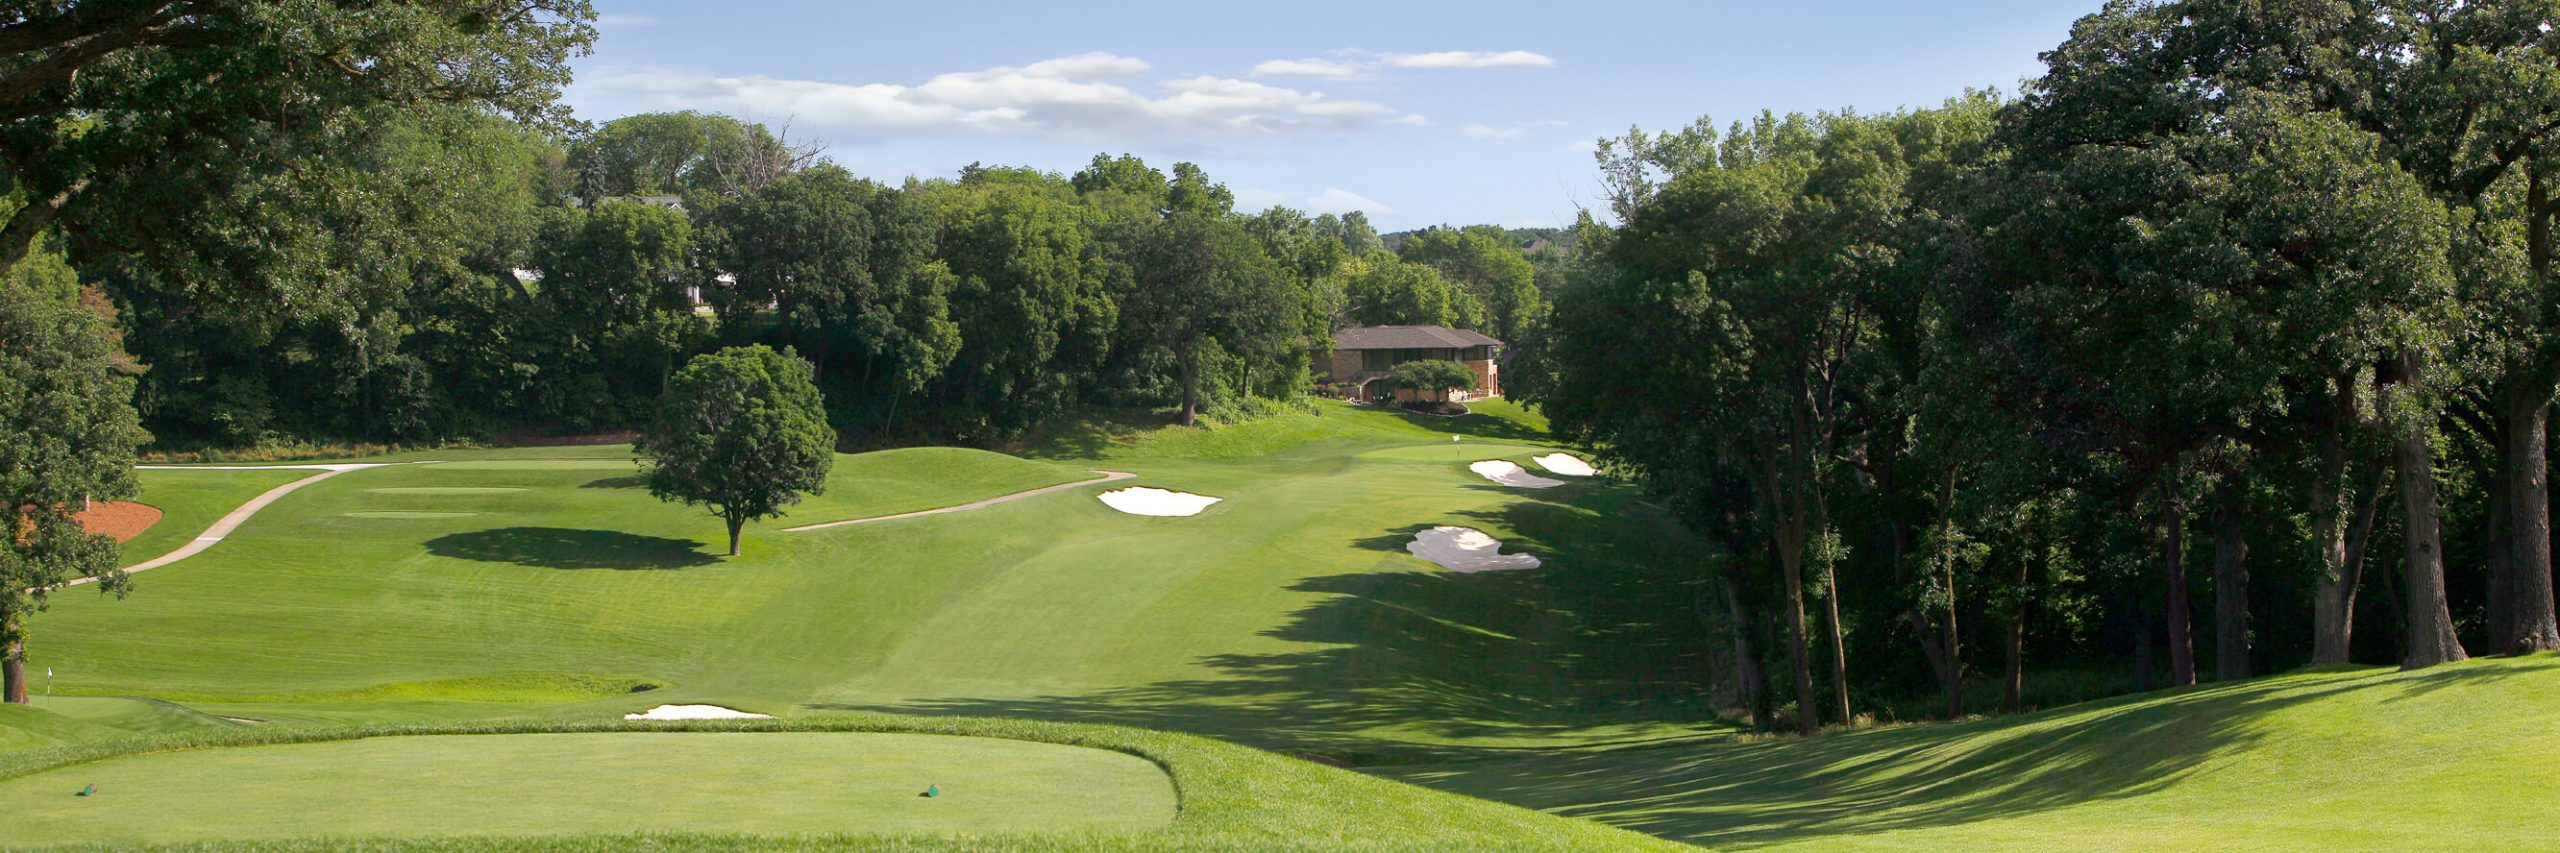 Golf Course Image - Omaha Country Club No. 10